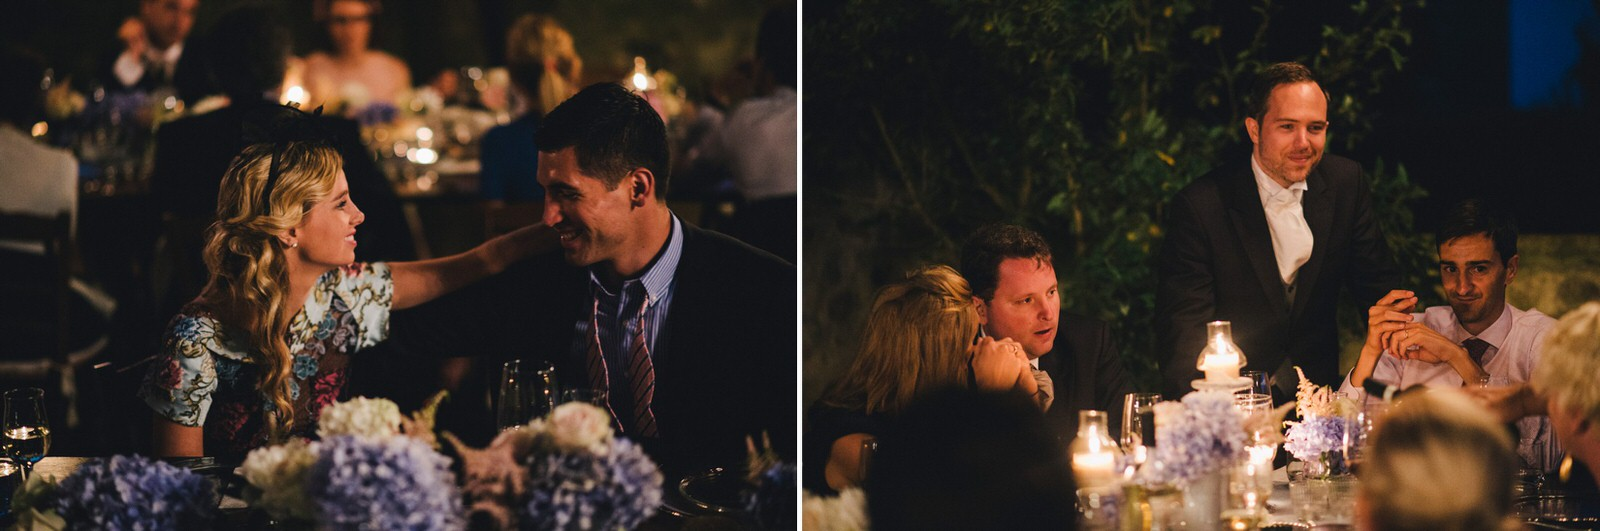 tuscany wedding collage moments from the groom speech